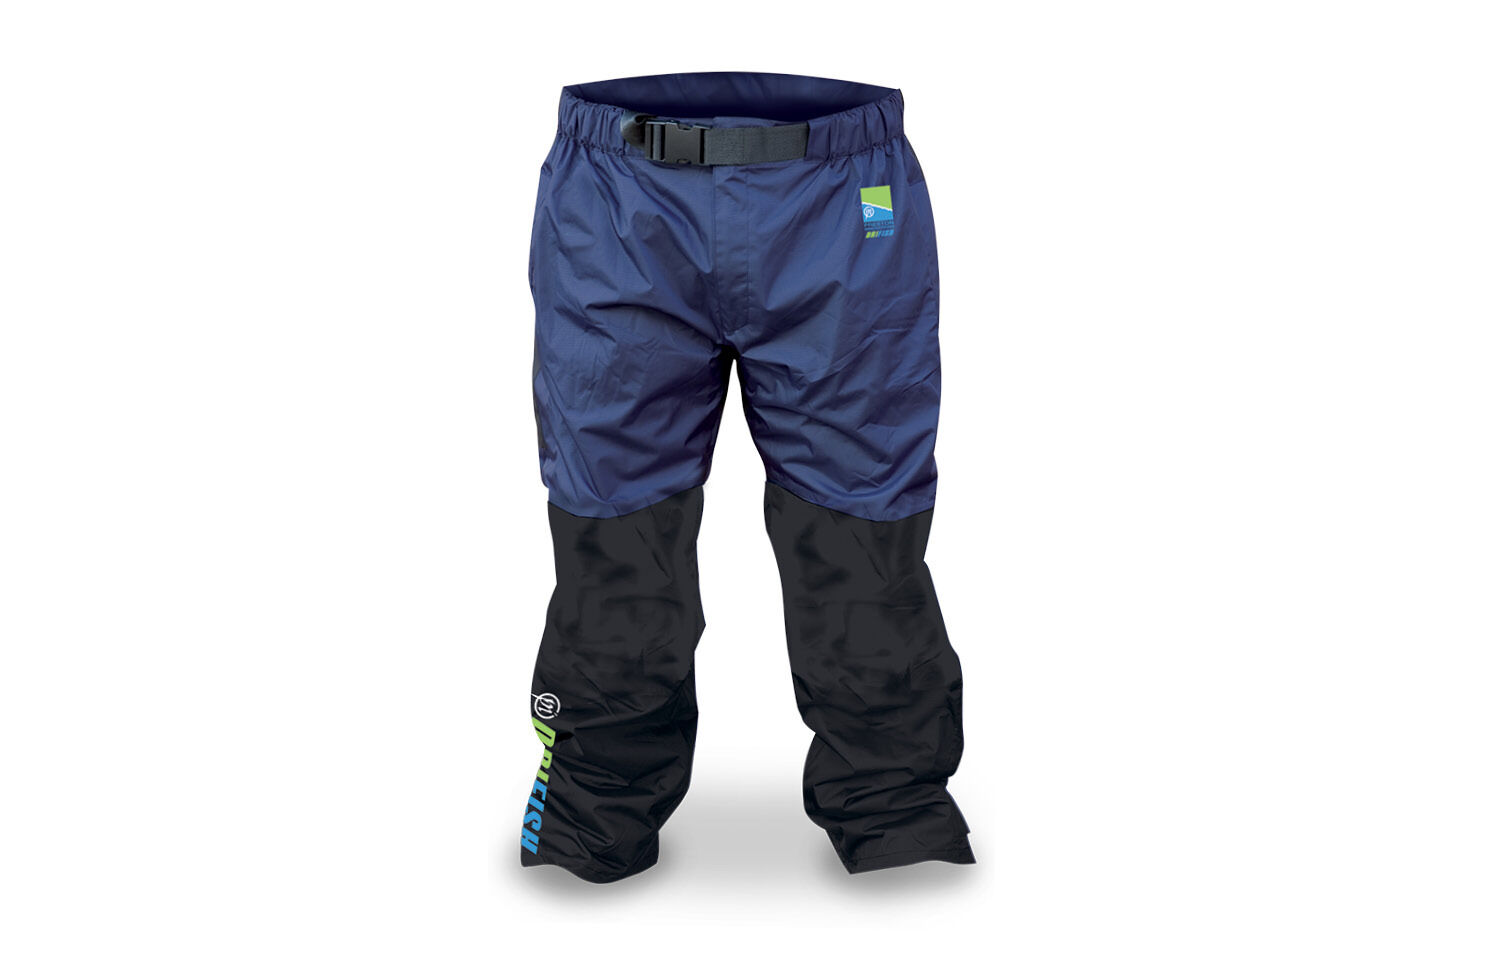 New Design Preston Innovations Drifish Trousers   come to choose your own sports style